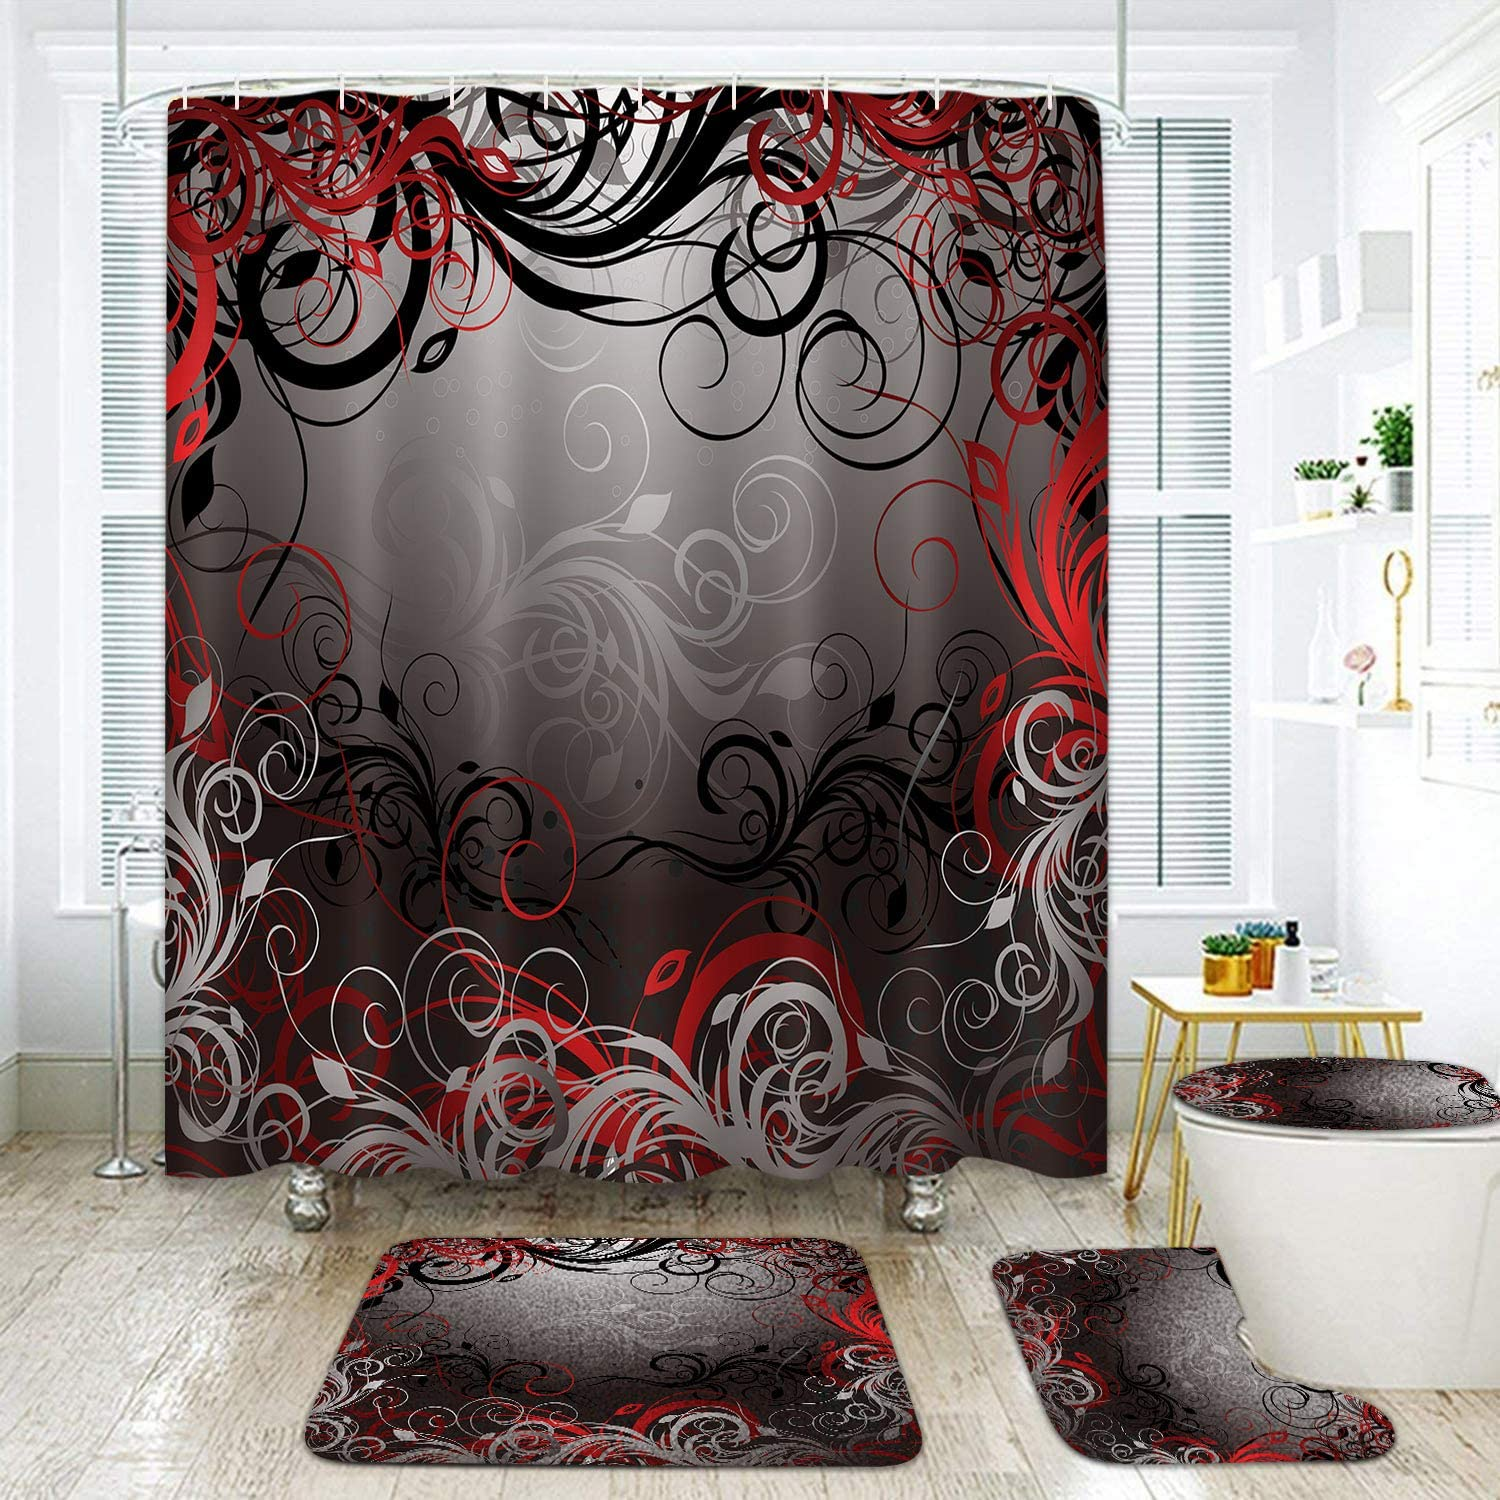 "Britimes 4 Pcs Shower Curtain Set Black red Gold Floral Abstract Swirl with Non-Slip Rugs Toilet Lid Cover and Bath Mat Bathroom Decor Set 72"" x 72"""